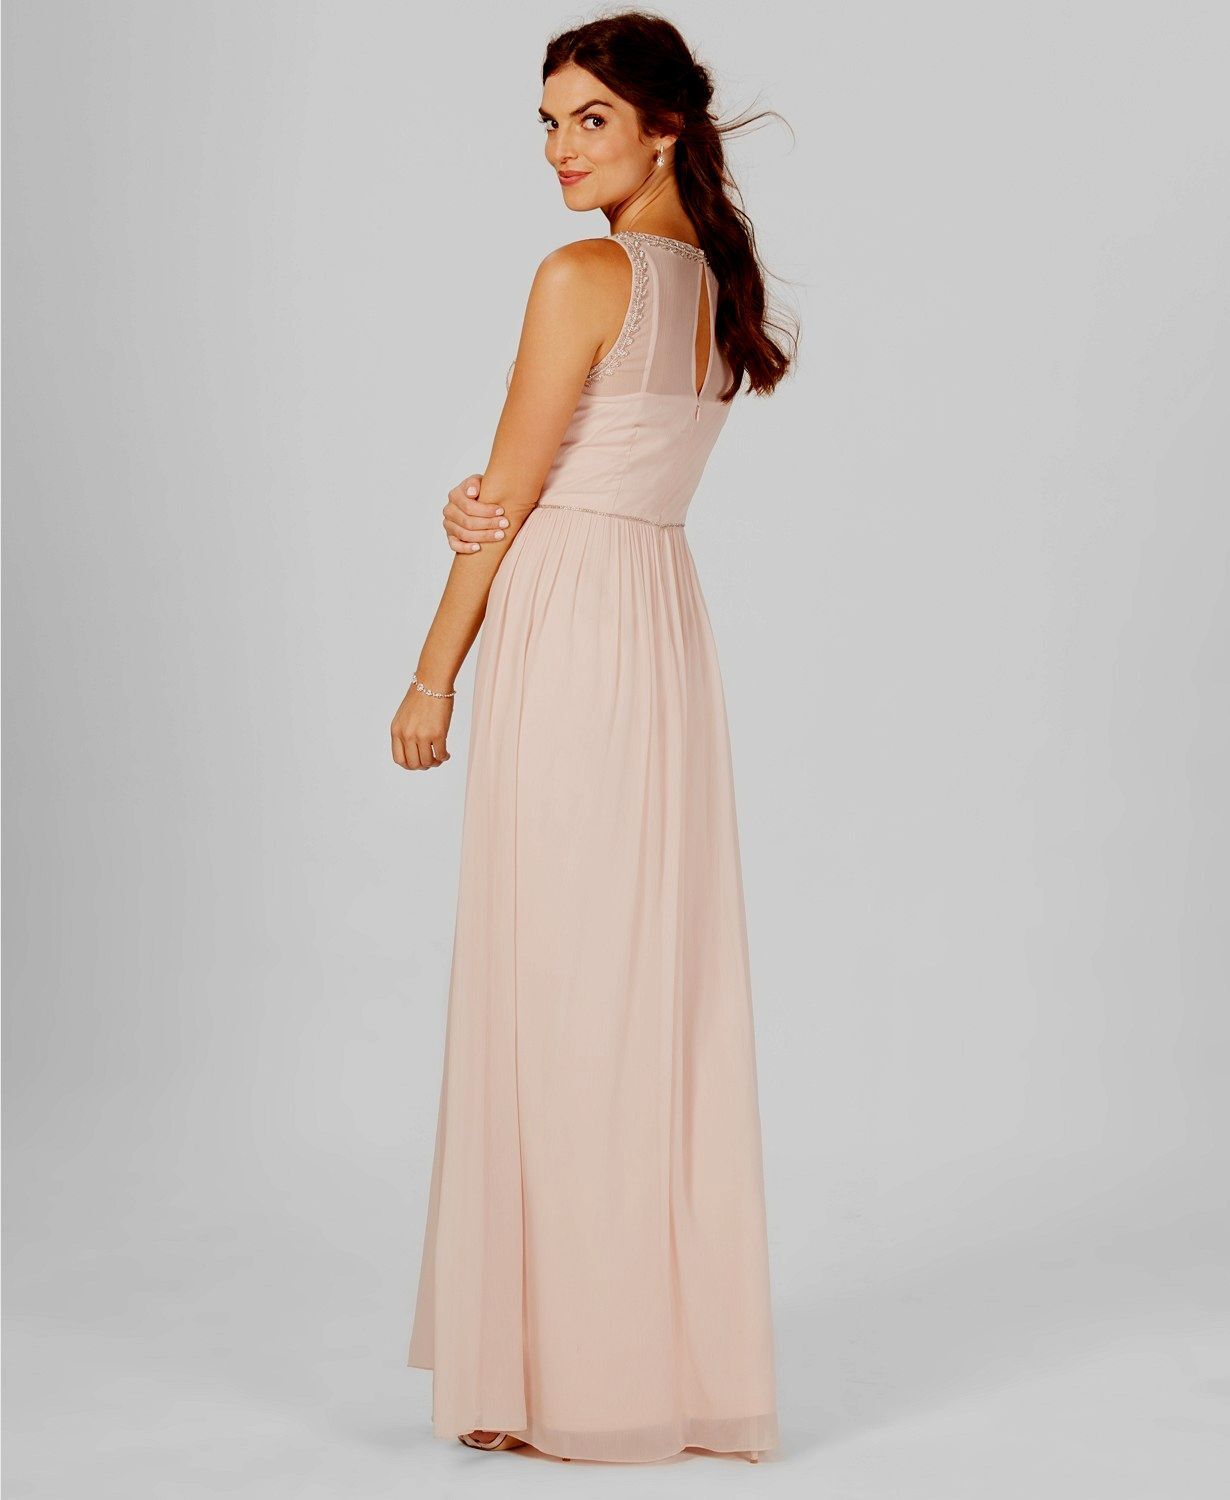 NWT  379 ADRIANNA PAPELL WOMENS PINK SLEEVELESS BEADED A-LINE A-LINE A-LINE GOWN DRESS SIZE 6 783c4a